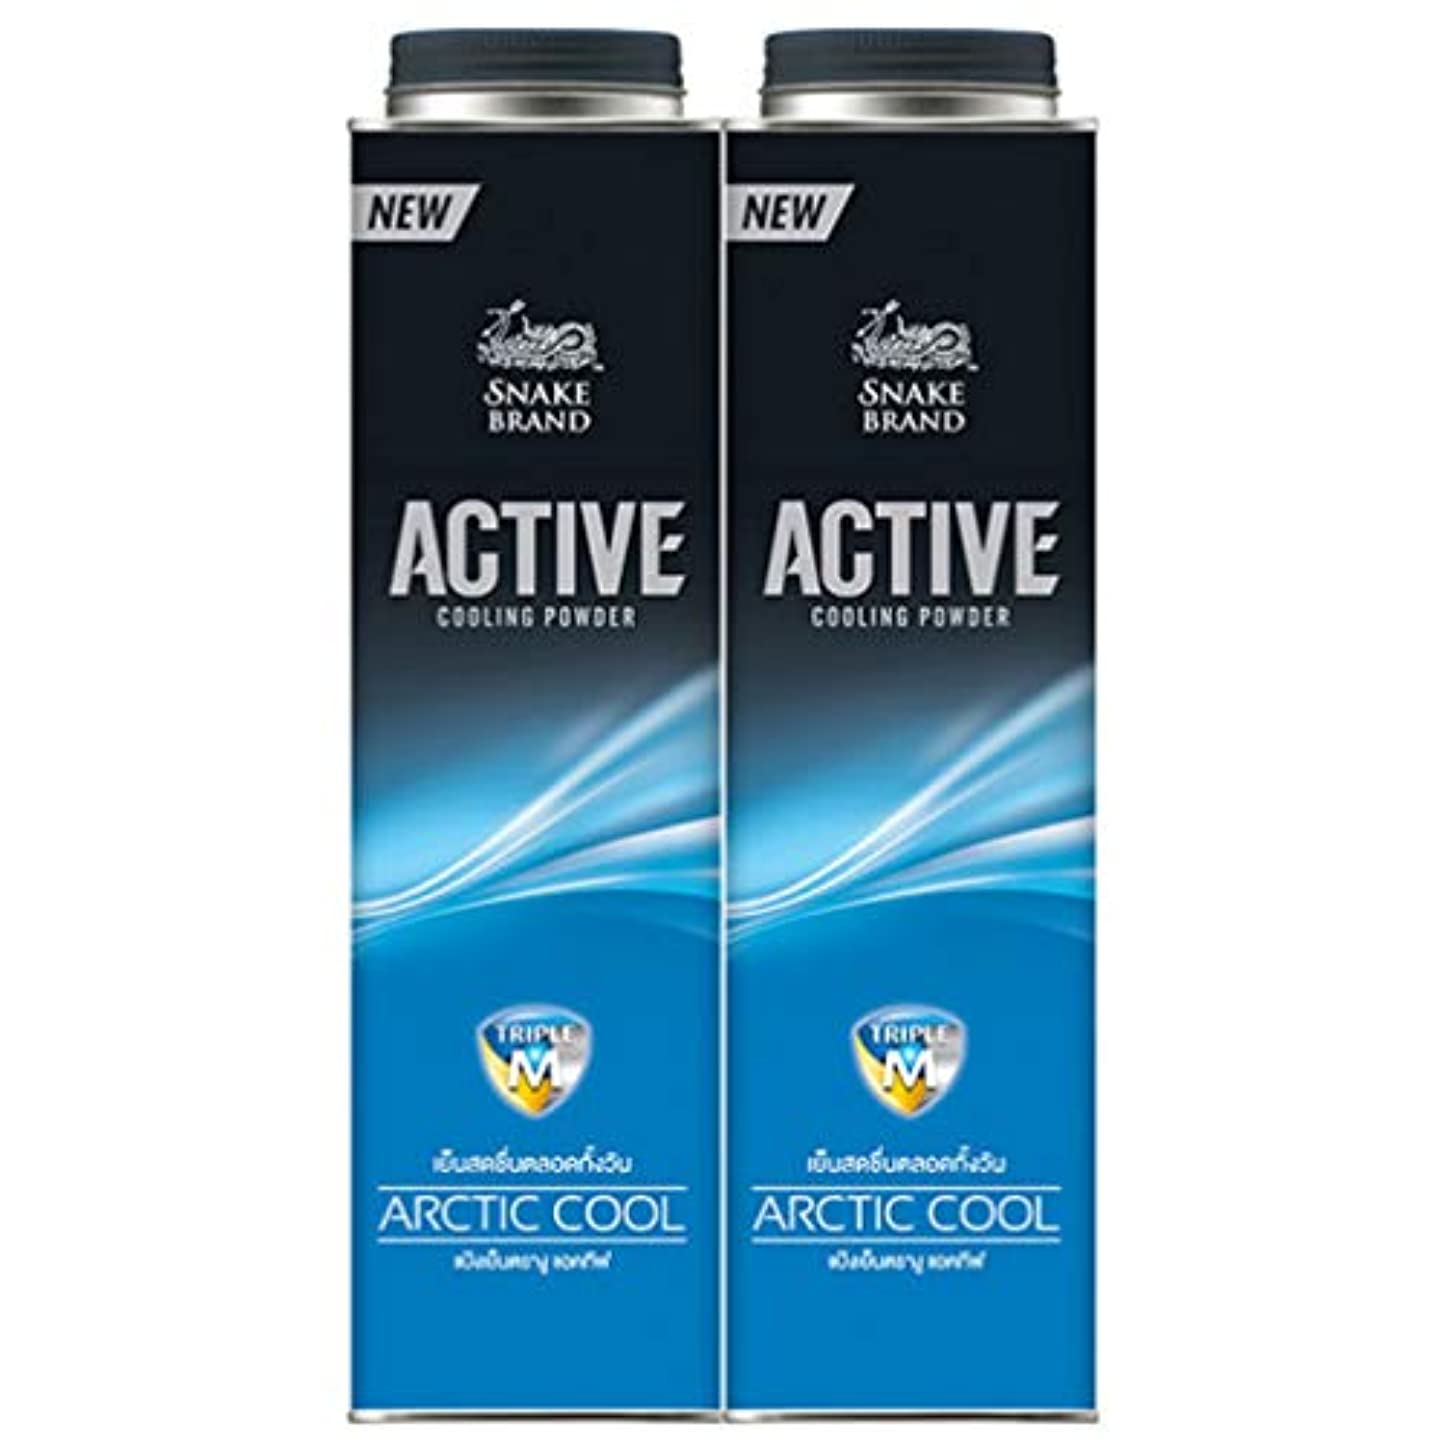 (sune-kuburando) SNAKE BRAND COOLING POWDER ACTIVE ARCTIC COOL BLUE COLOR 280 G PACK 2